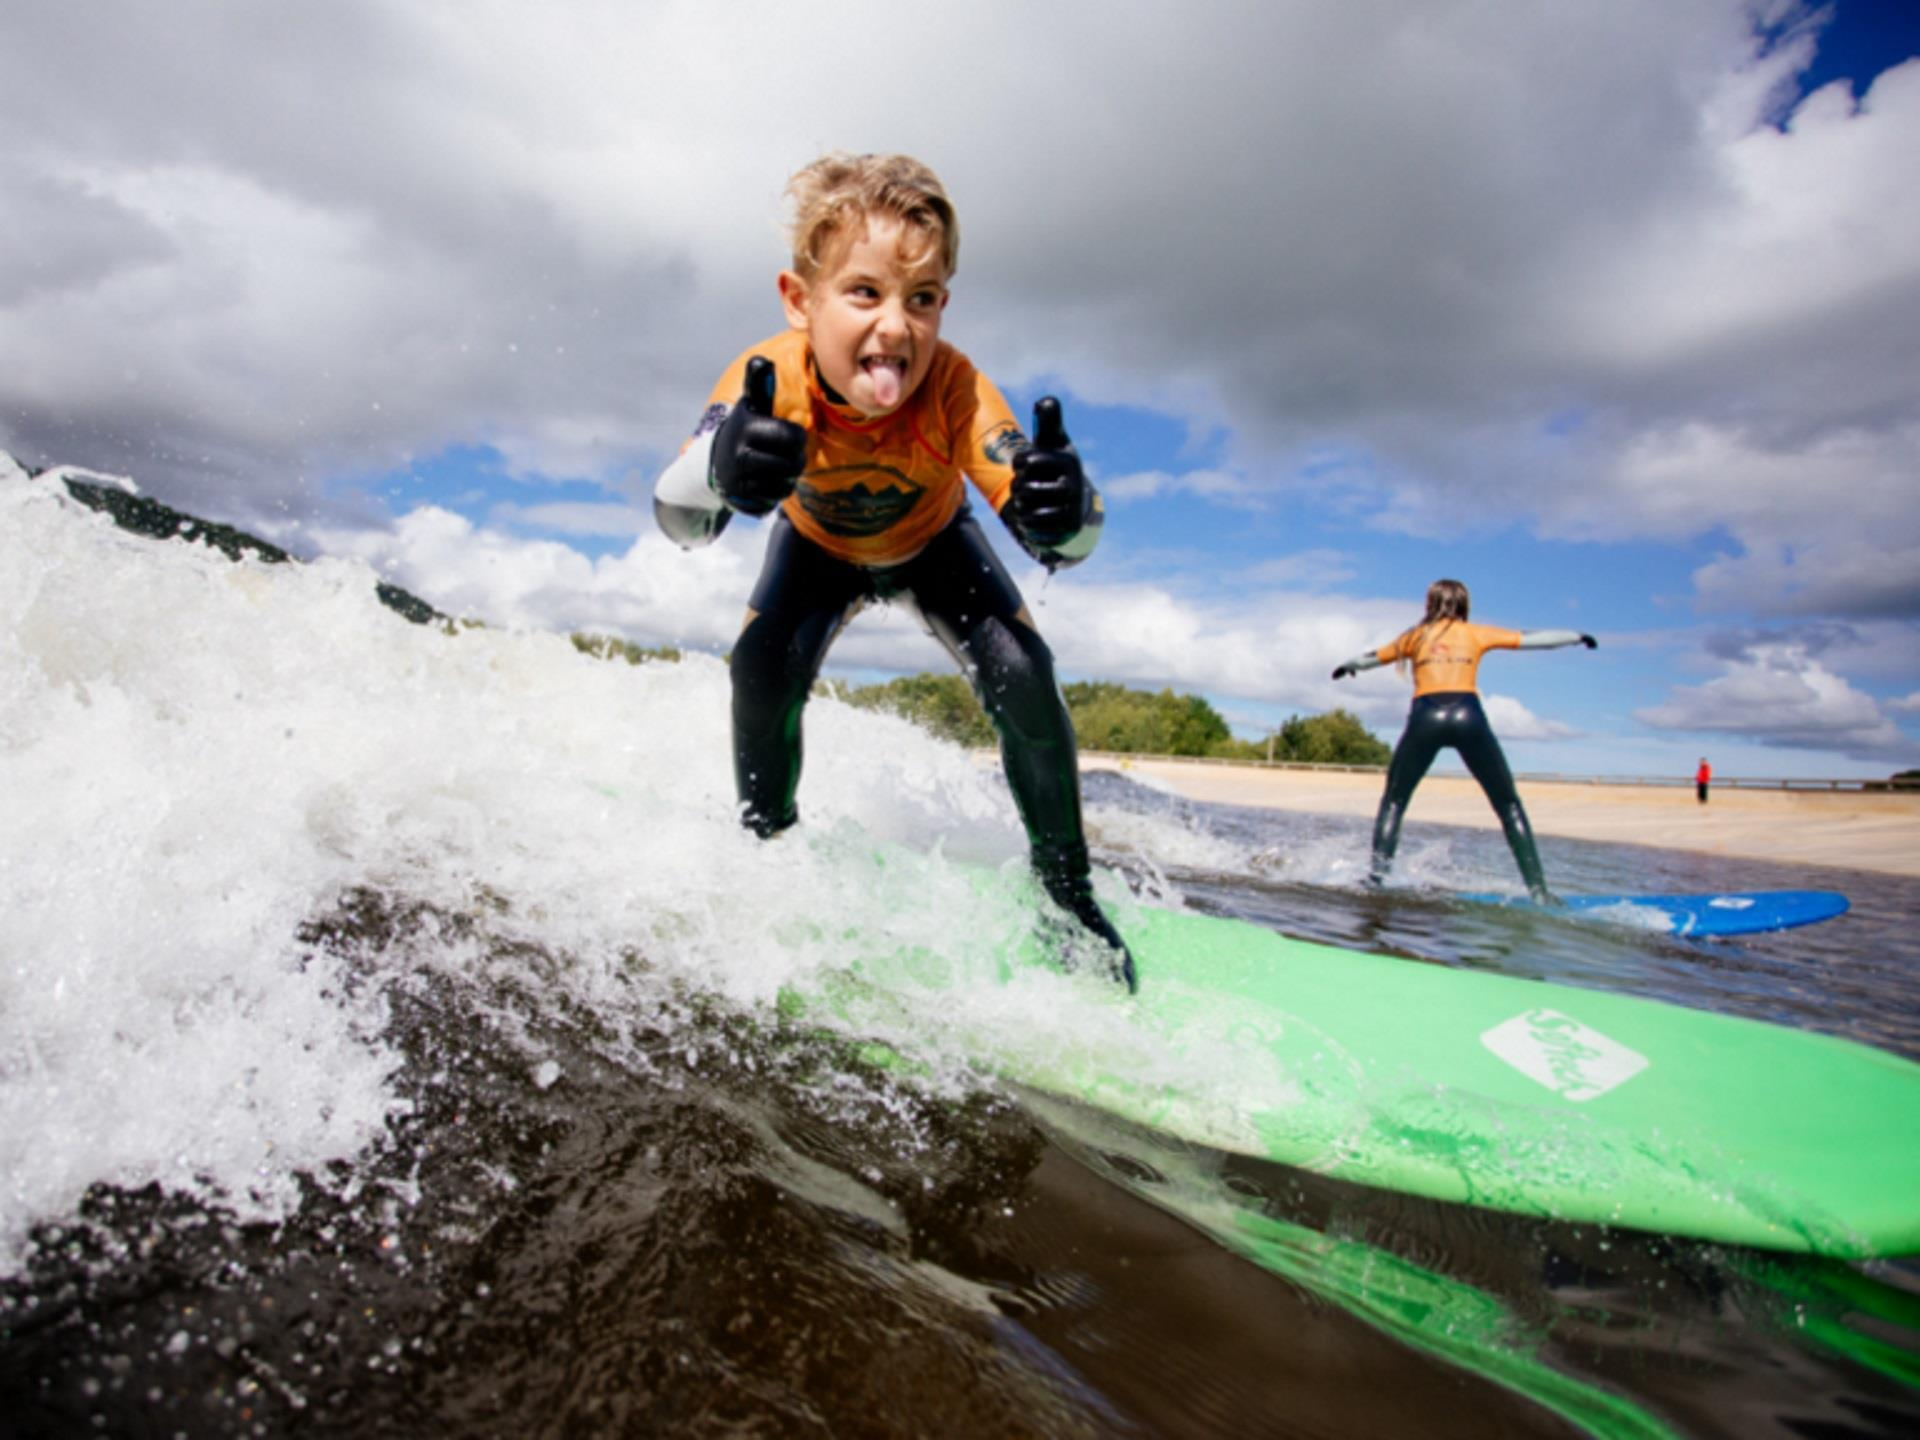 Surf Lessons at Adventure Parc Snowdonia